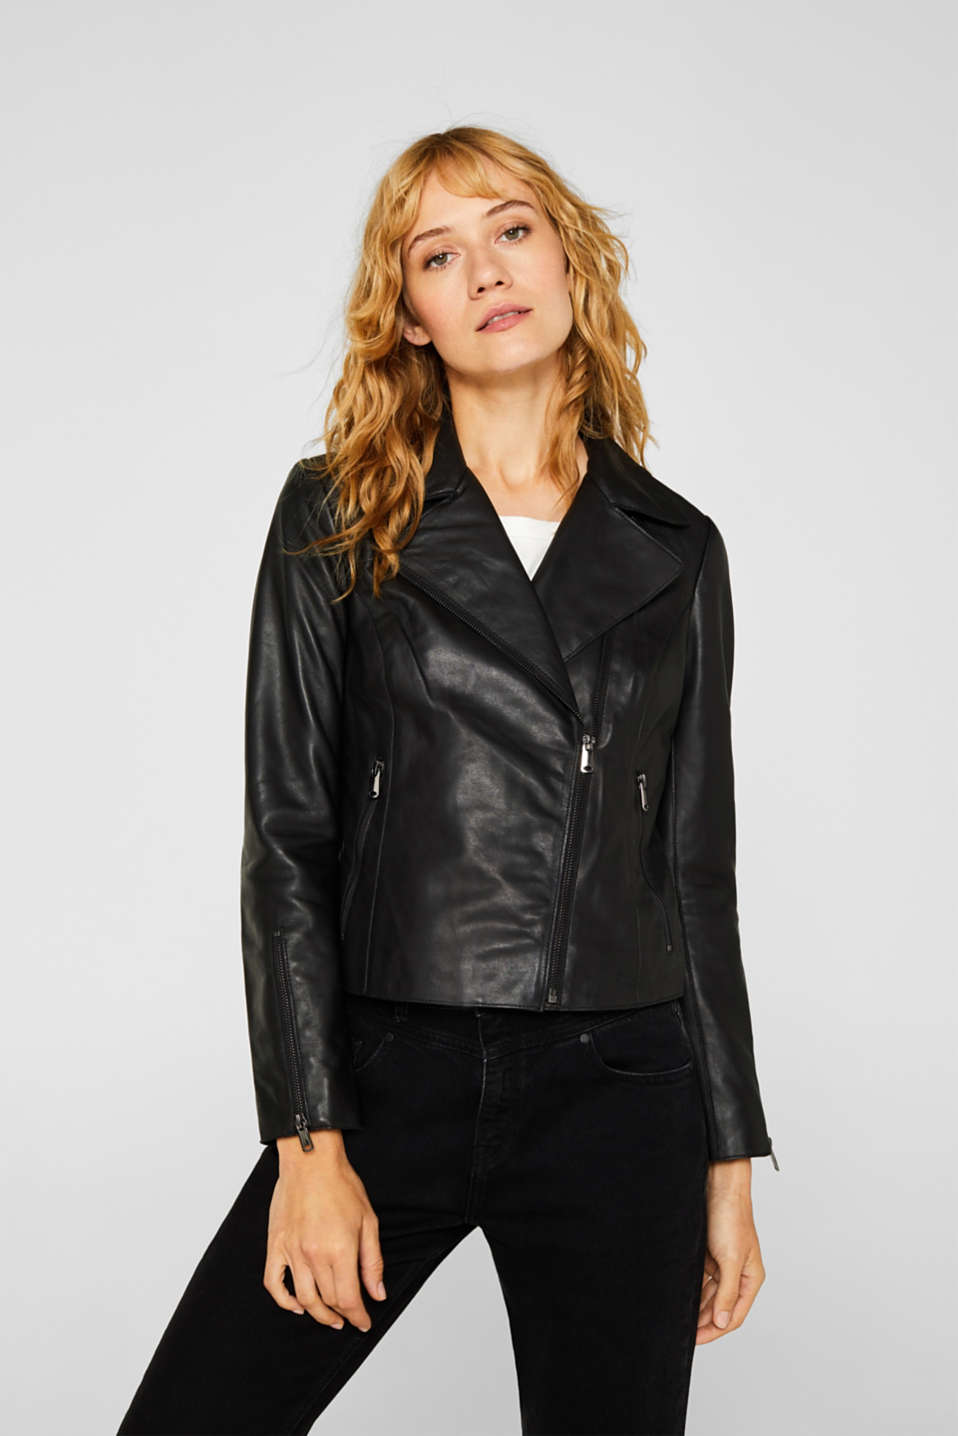 Esprit - Fitted biker jacket made of leather